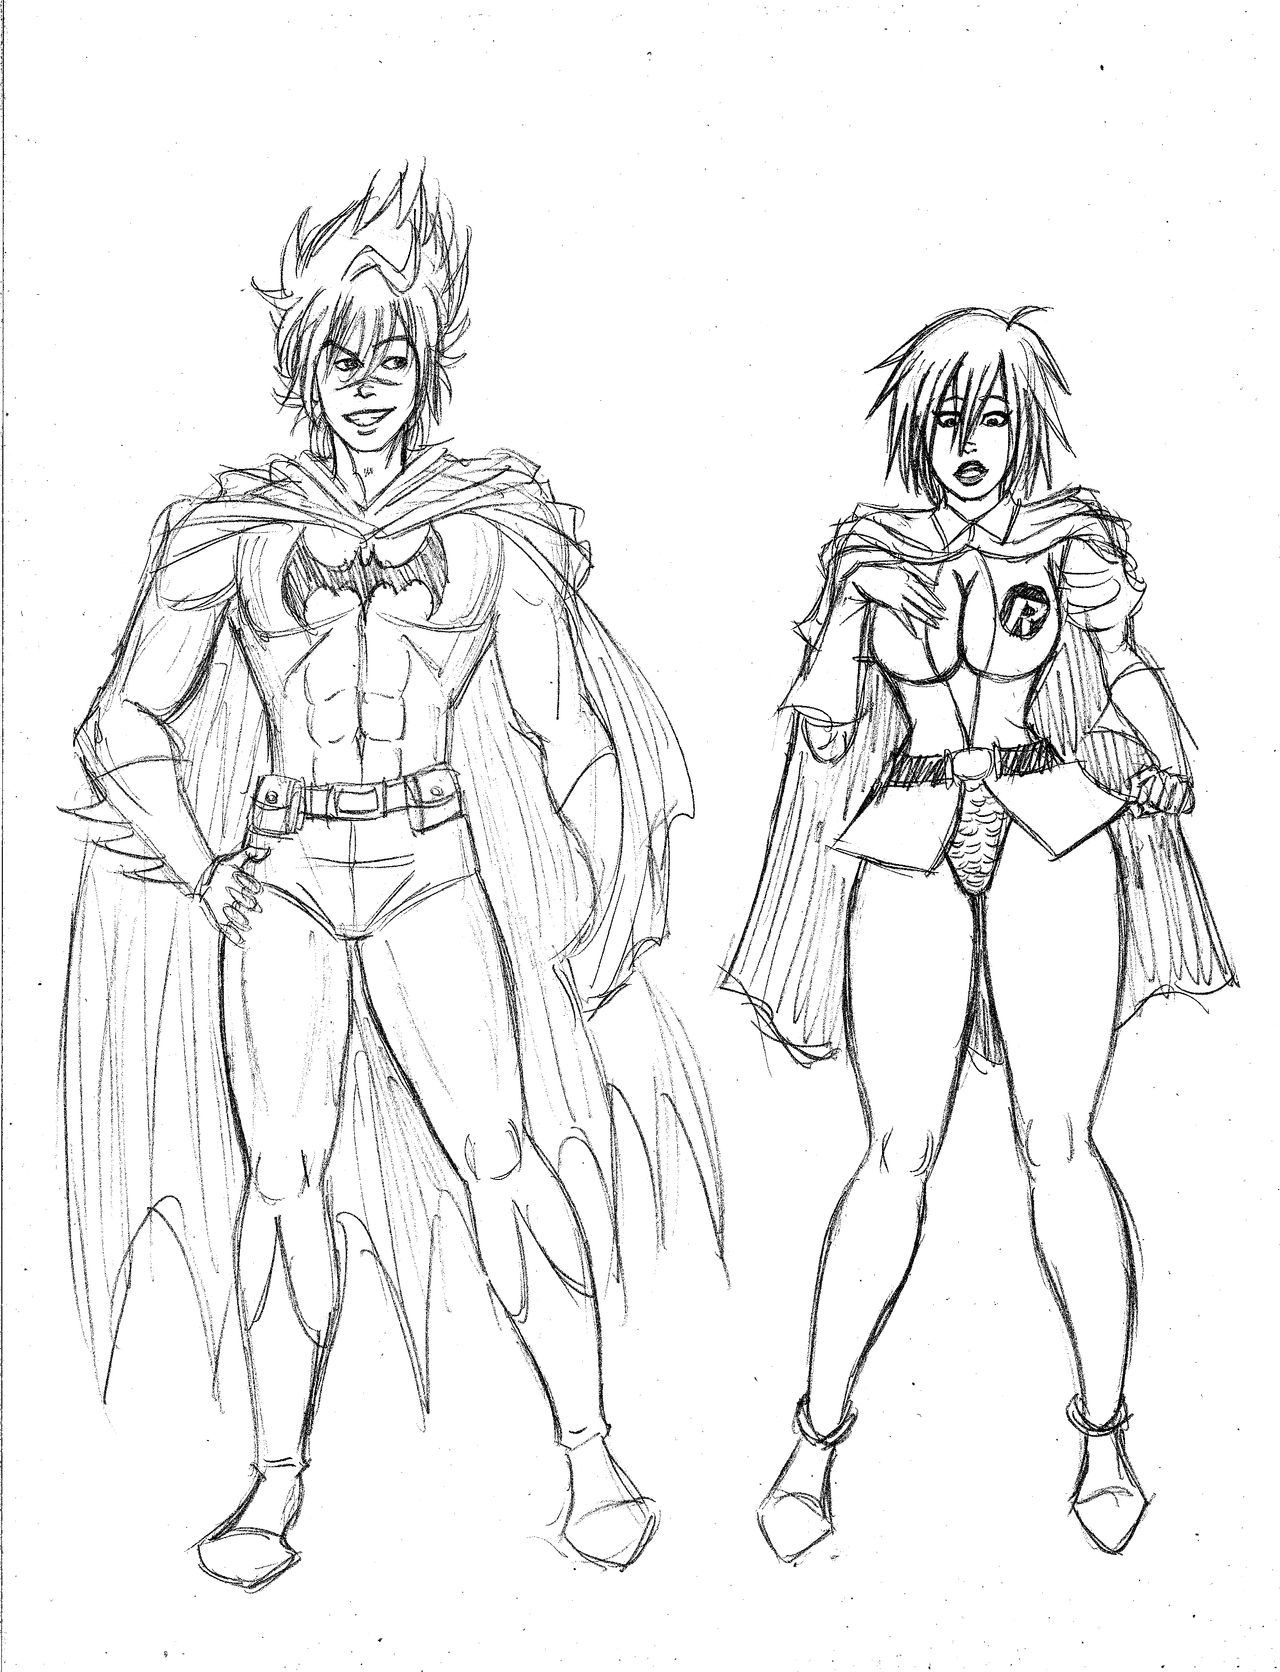 Rascunhos do Frog - Página 2 Carter_and_rhiven_as_batman_and_robin_by_frogwalker-d4ujkev